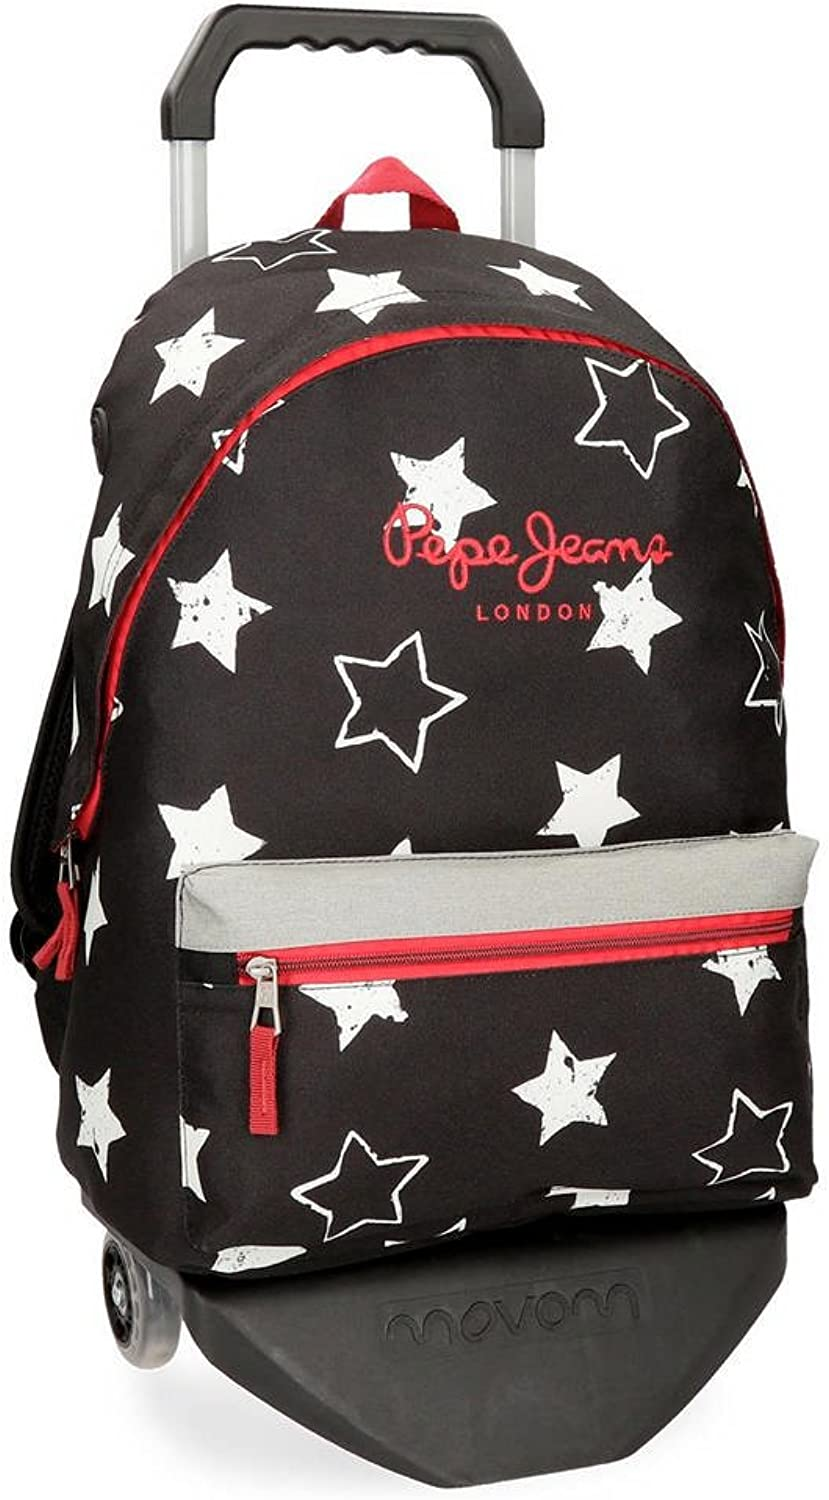 Pepe Jeans Jessa School Backpack, 42 cm, 22.79 liters, Black (black)